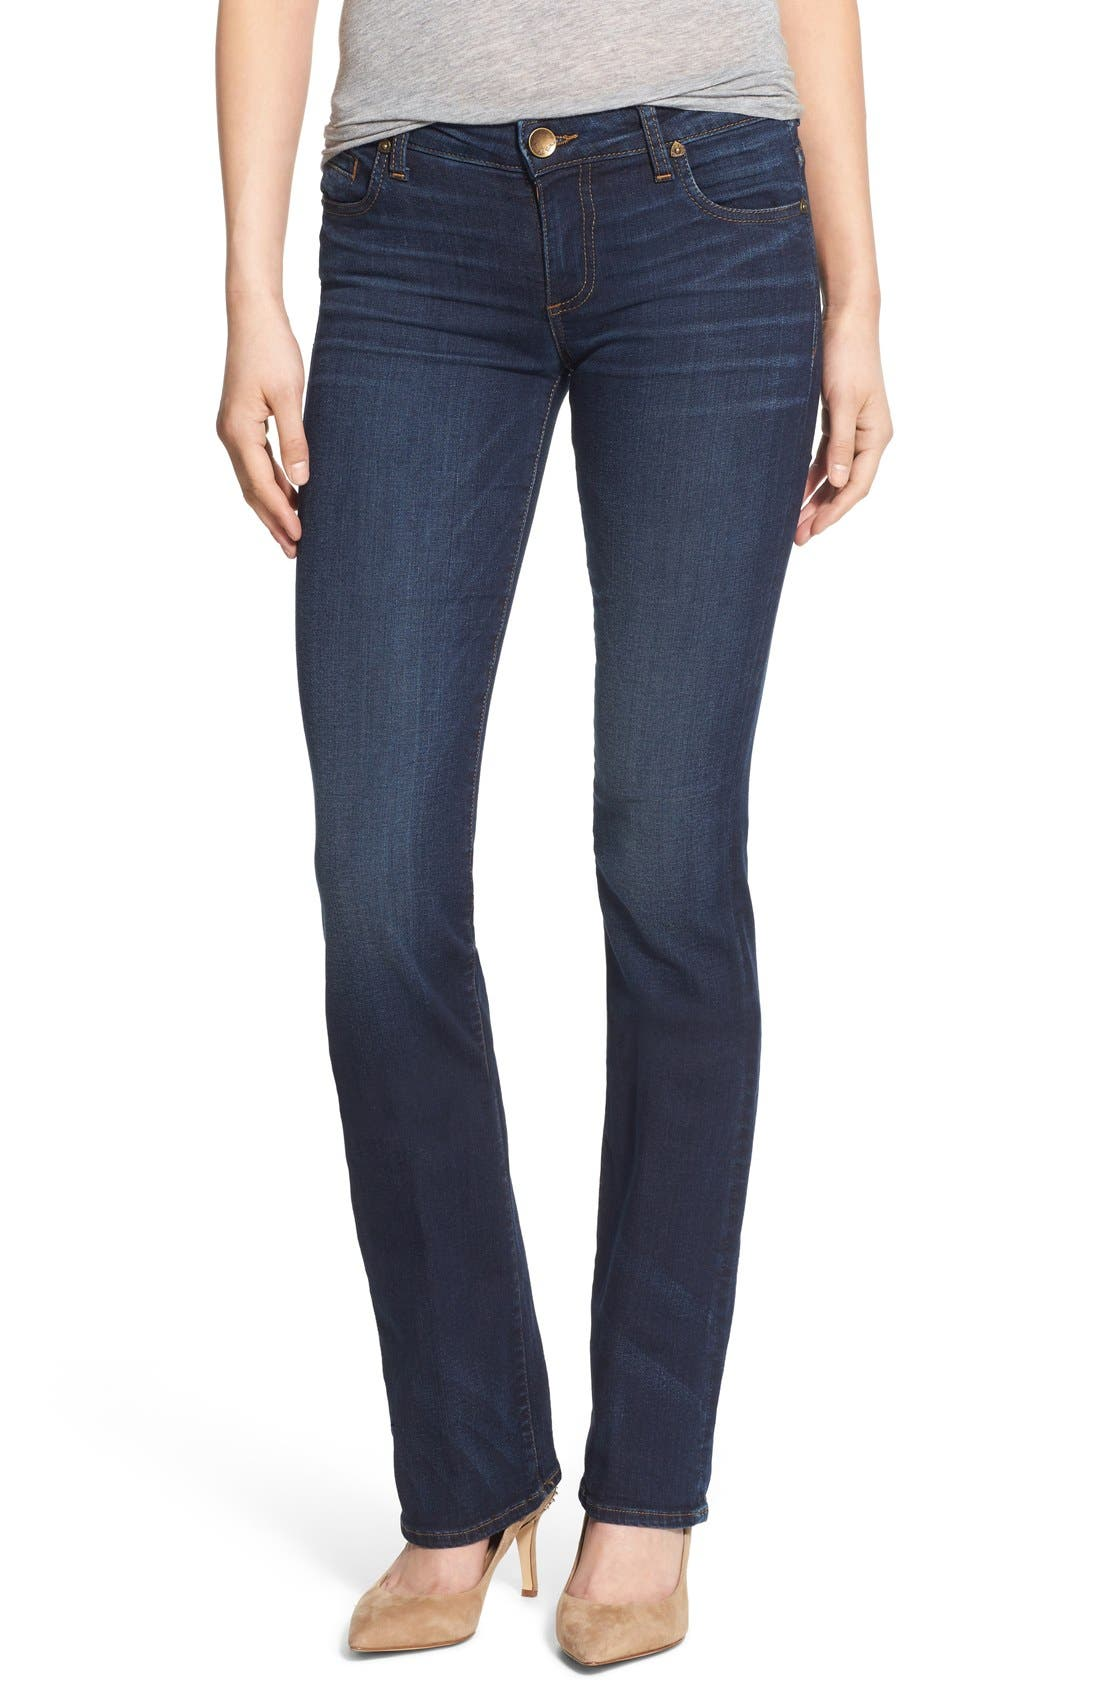 Alternate Image 1 Selected - KUT from the Kloth 'Natalie' Stretch Bootleg Jeans (Closeness)